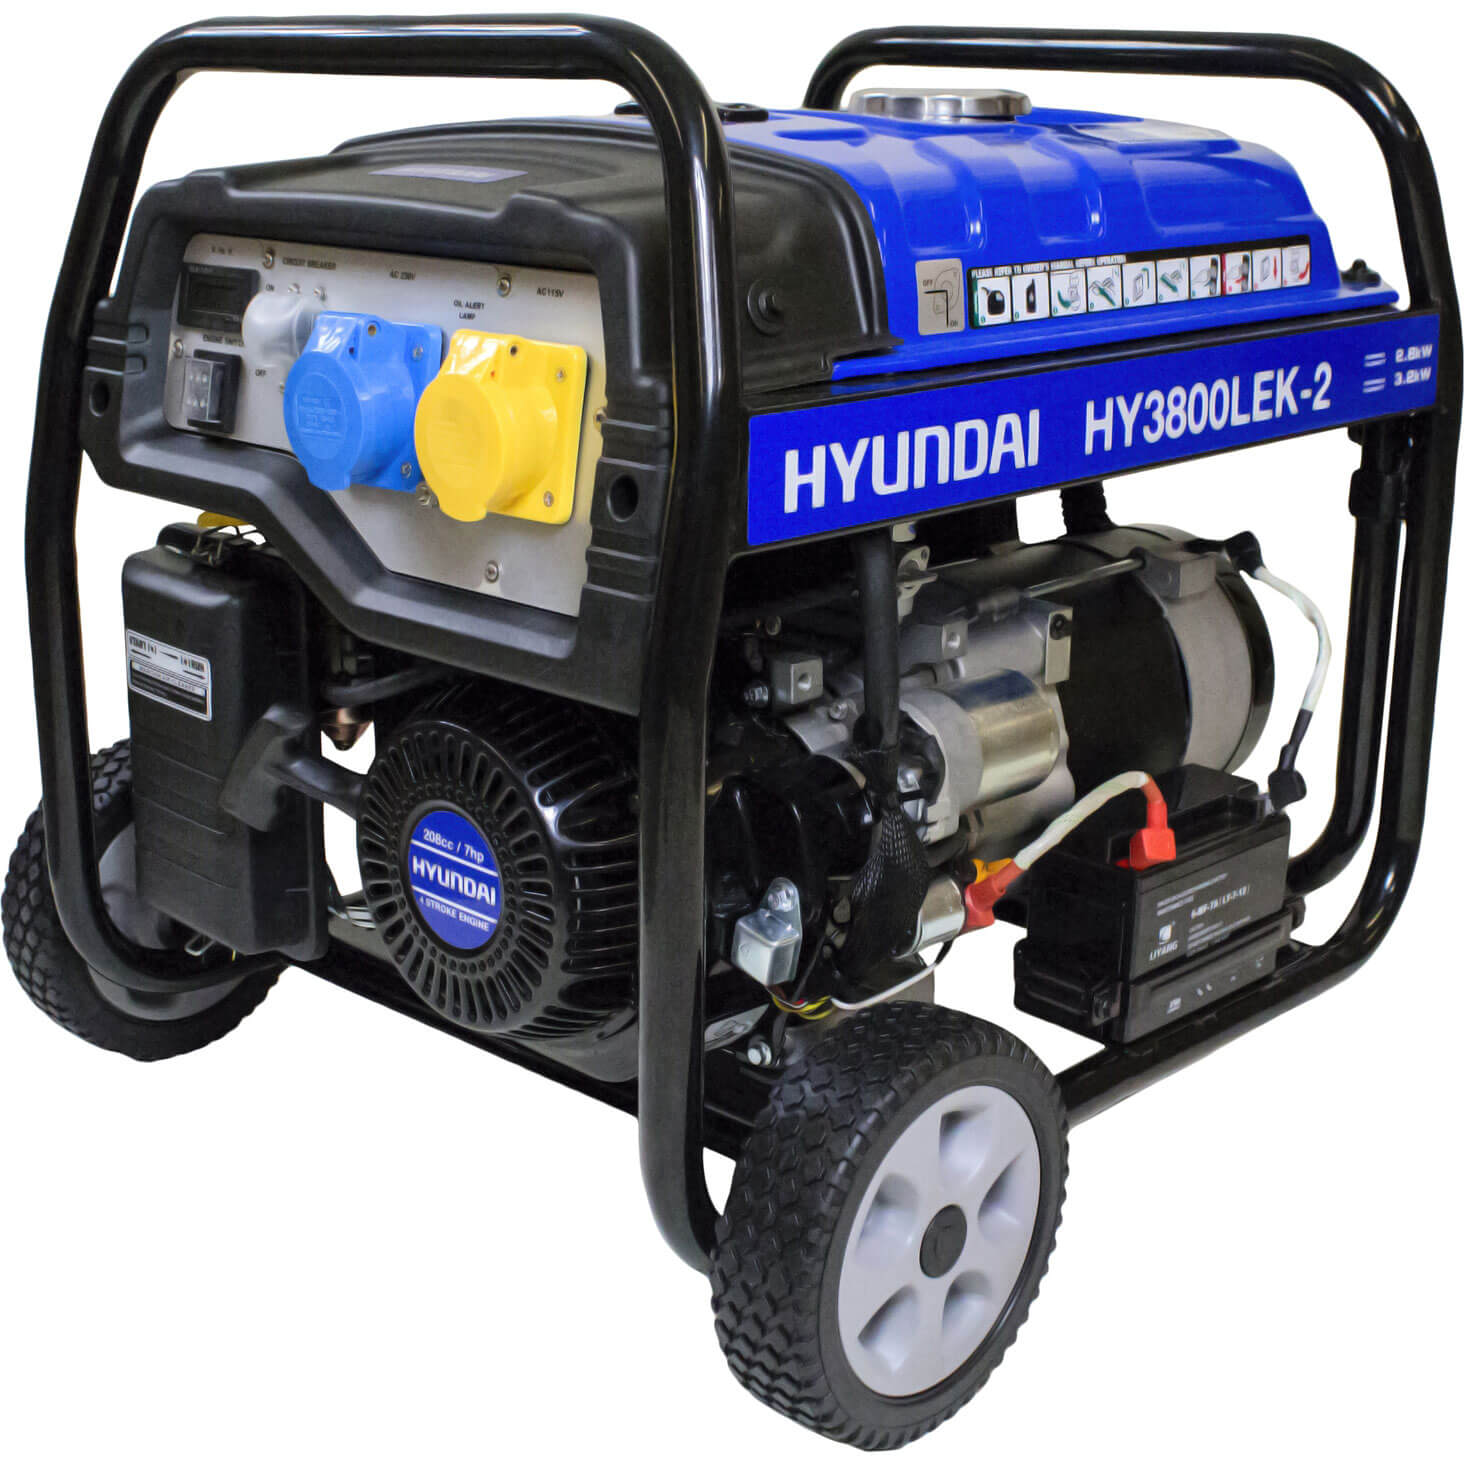 Image of Hyundai 3.2 Kw / 4.0 Kva Generator Key Start